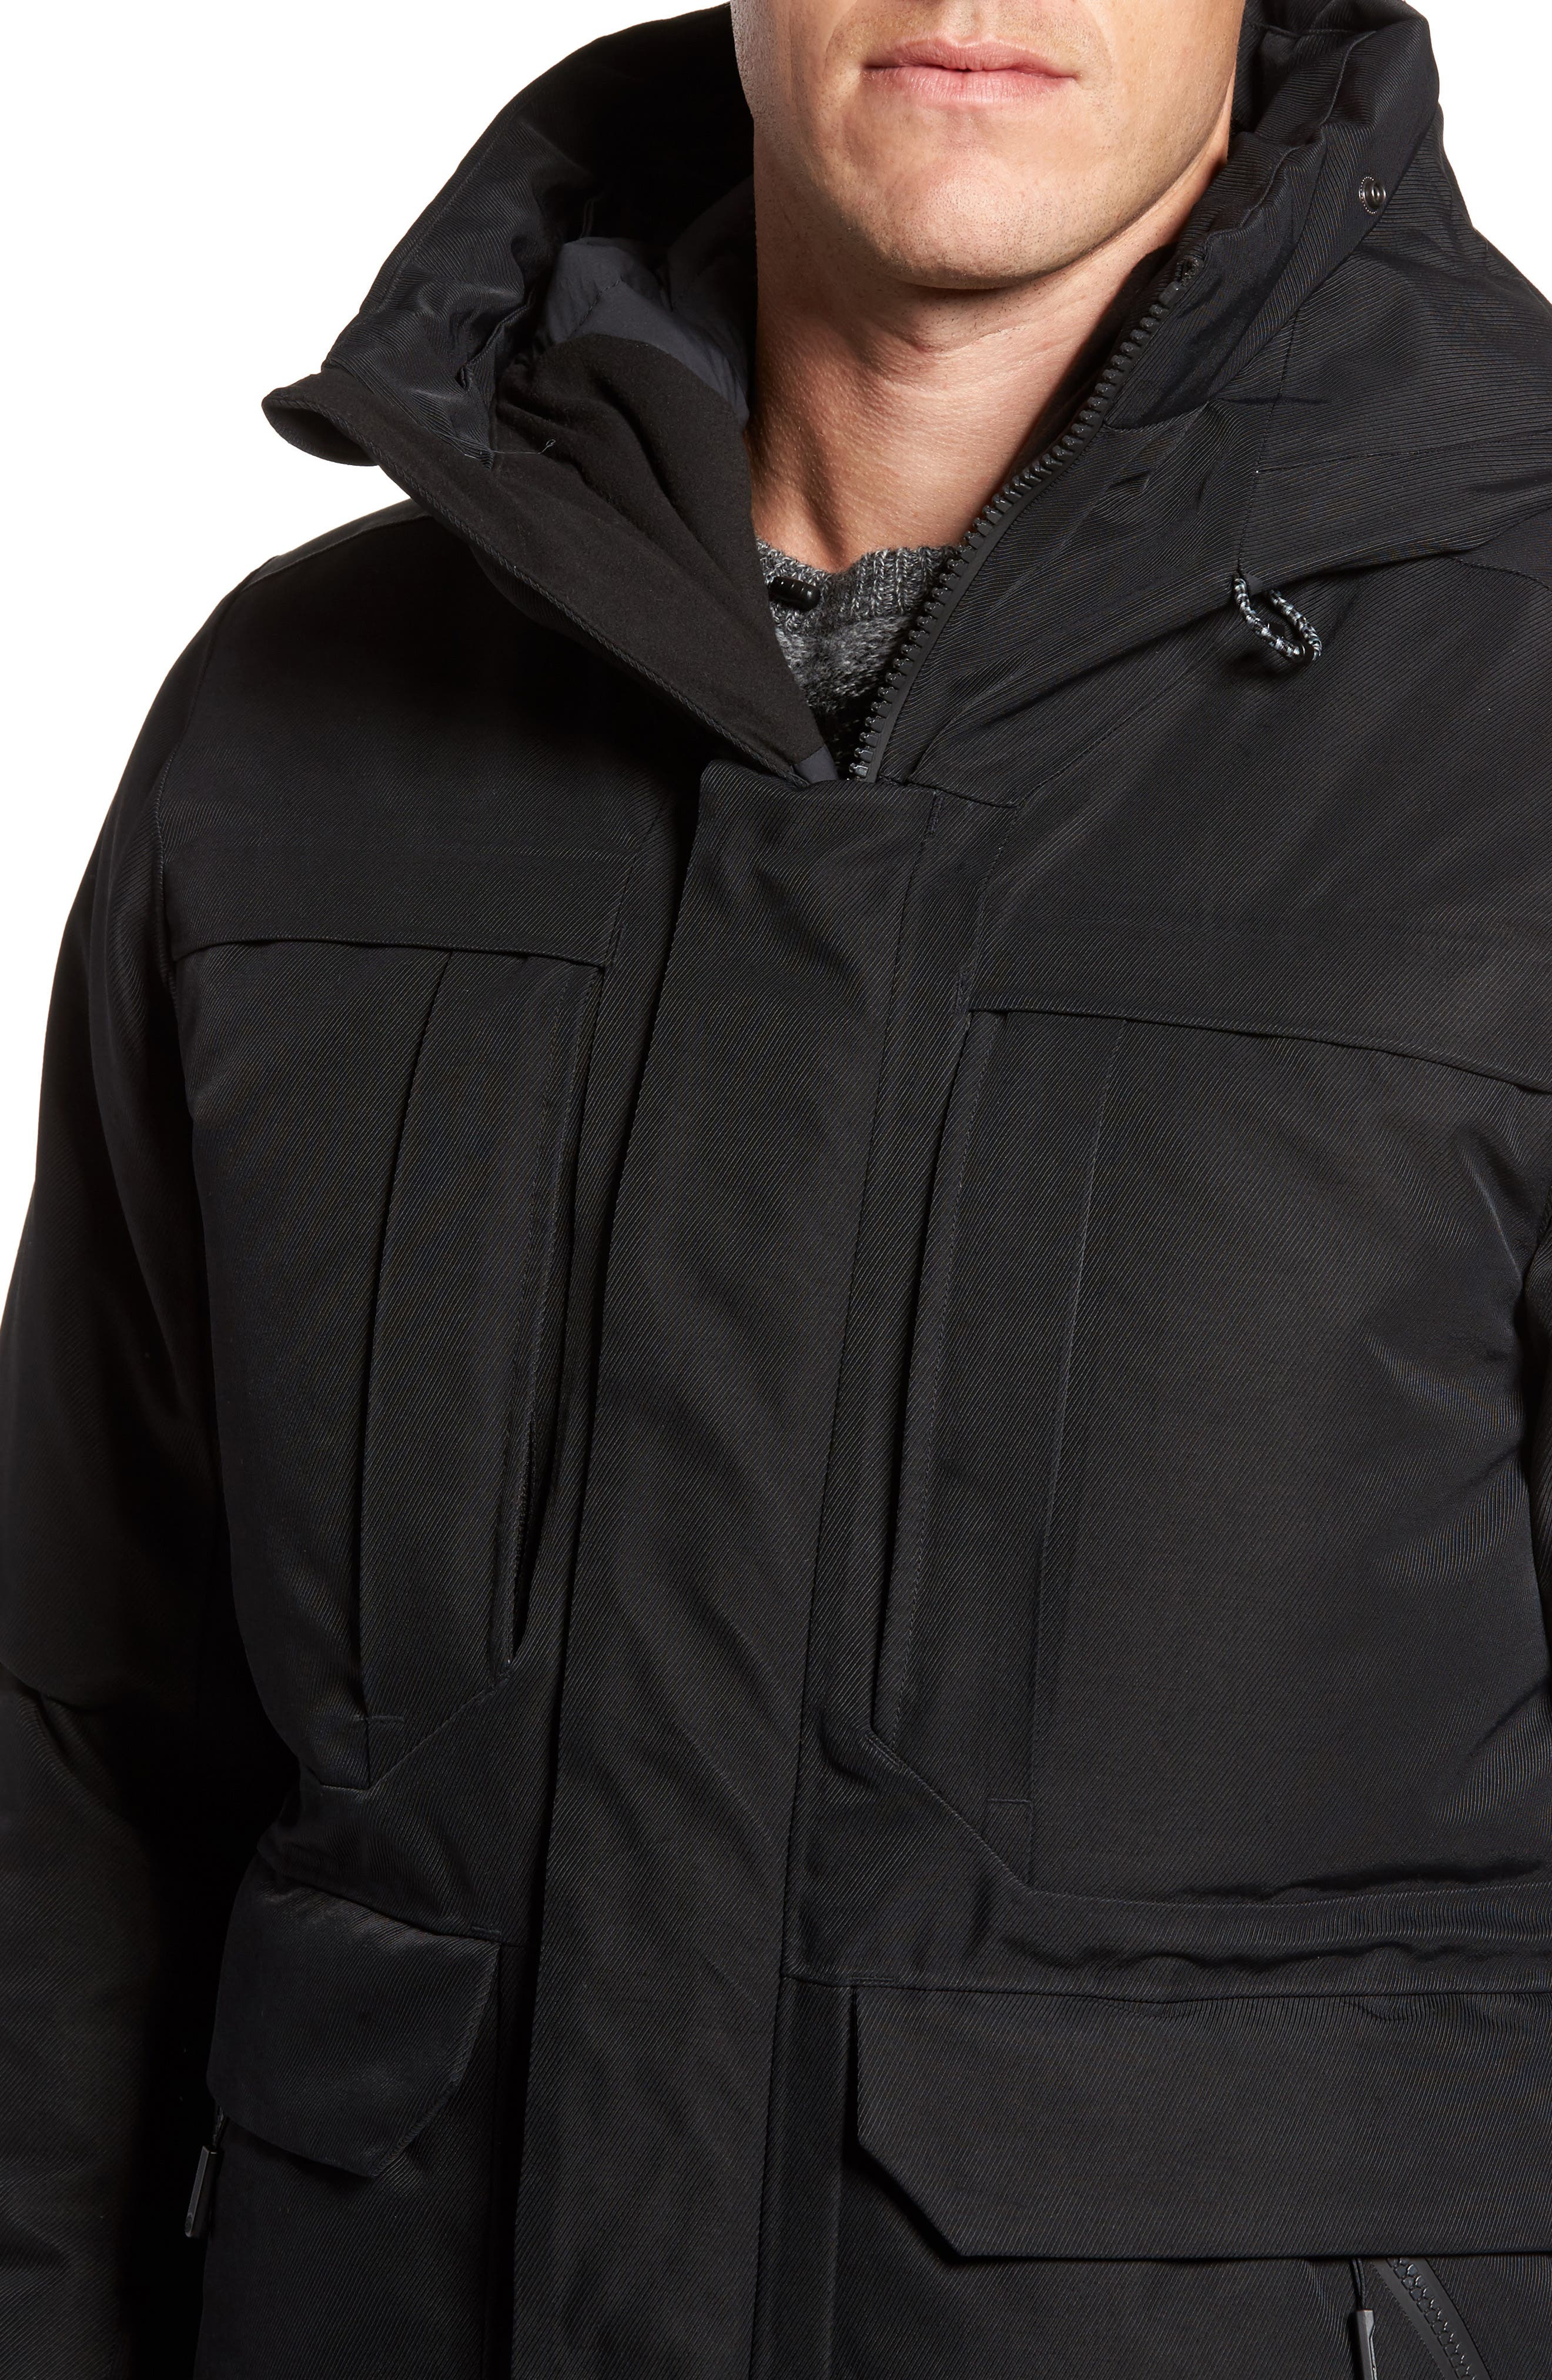 Cryos Expedition Gore-Tex<sup>®</sup> Bomber Jacket,                             Alternate thumbnail 10, color,